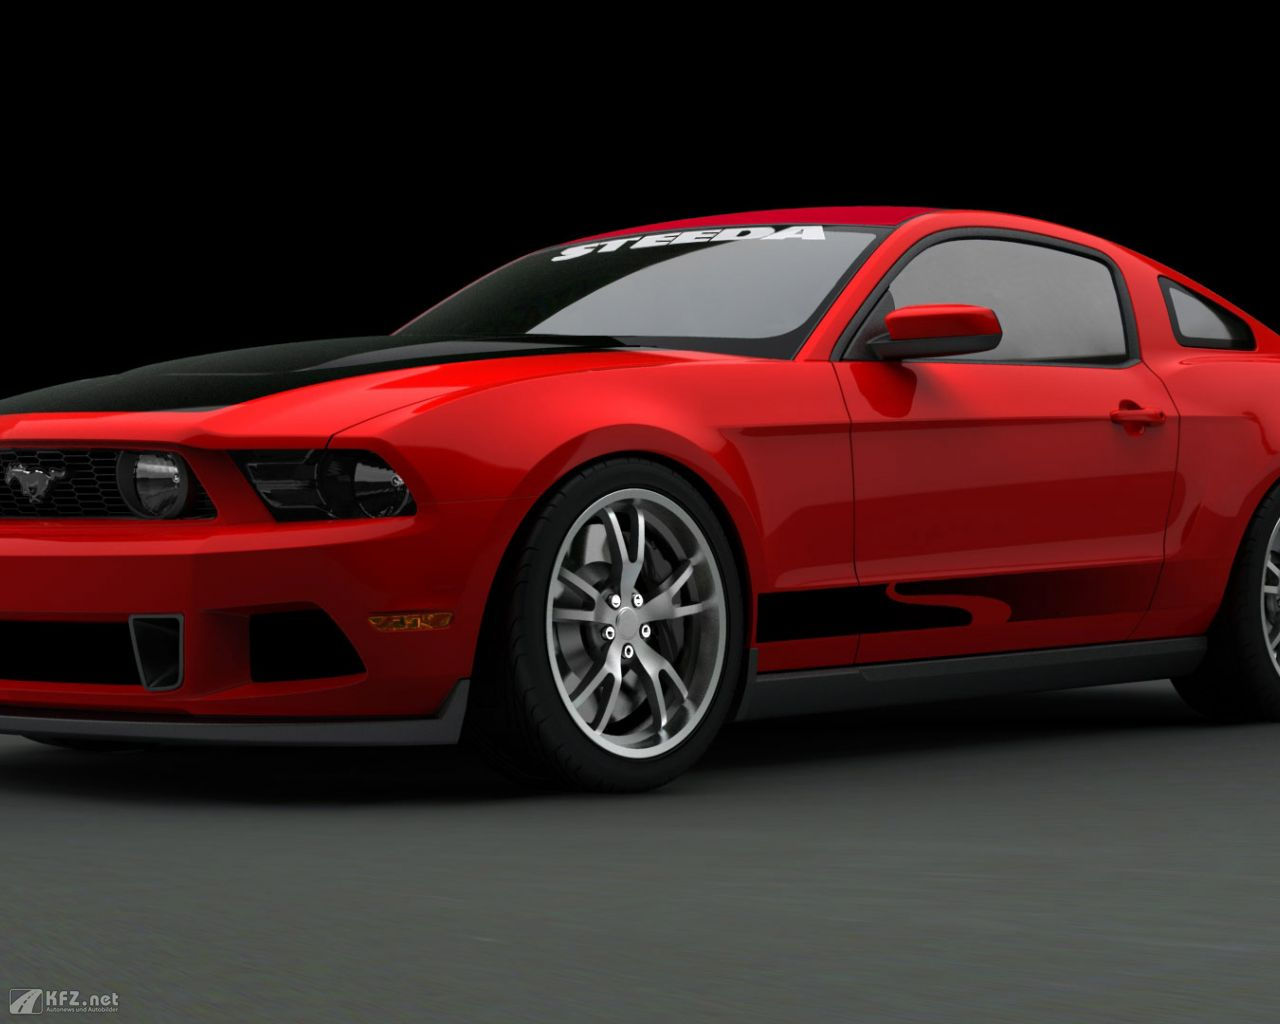 ford-mustang-1280x1024-20